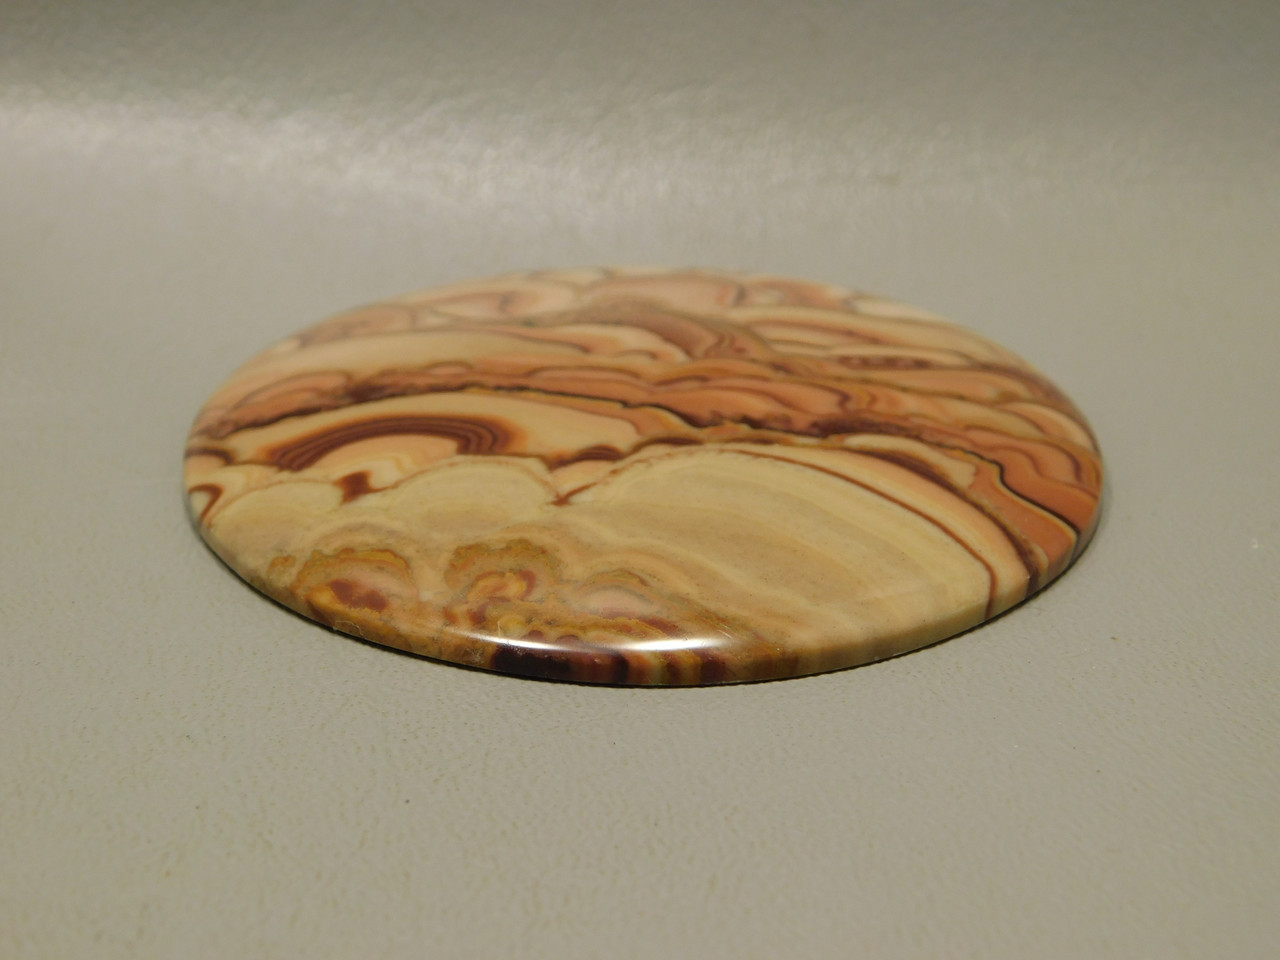 Wave Dolomite Cabochon Collector 70 mm Round Large Stone XL4